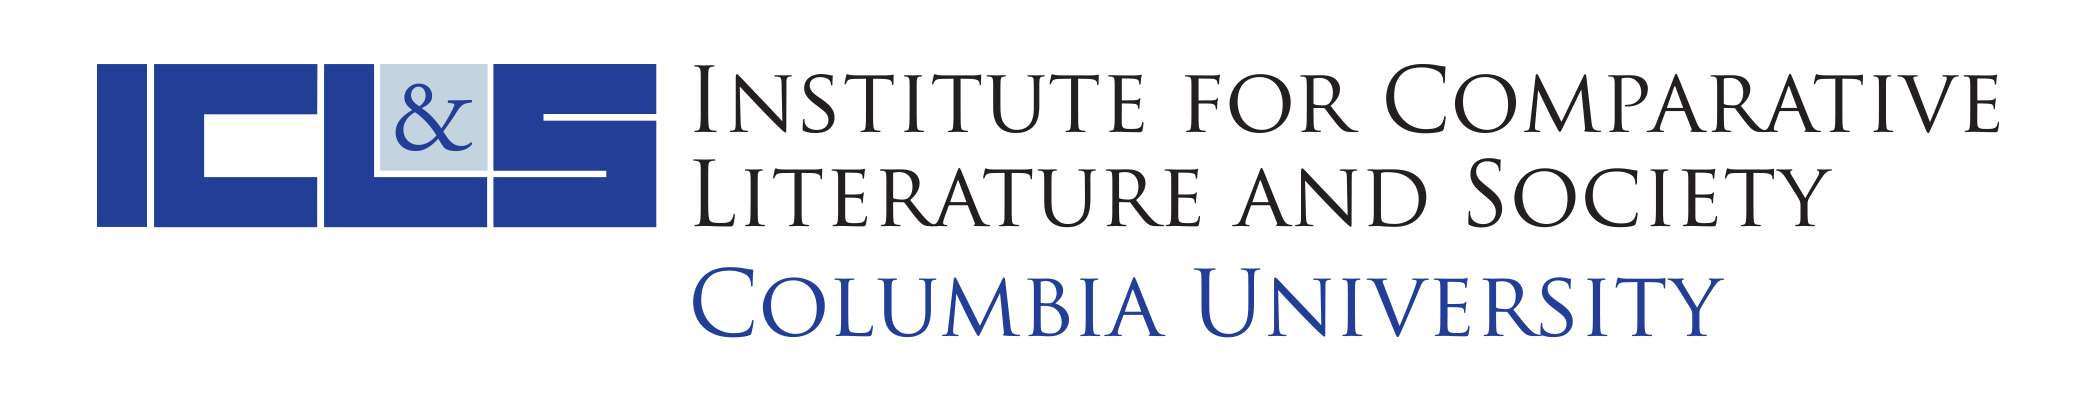 Institute for Comparative Literature and Society